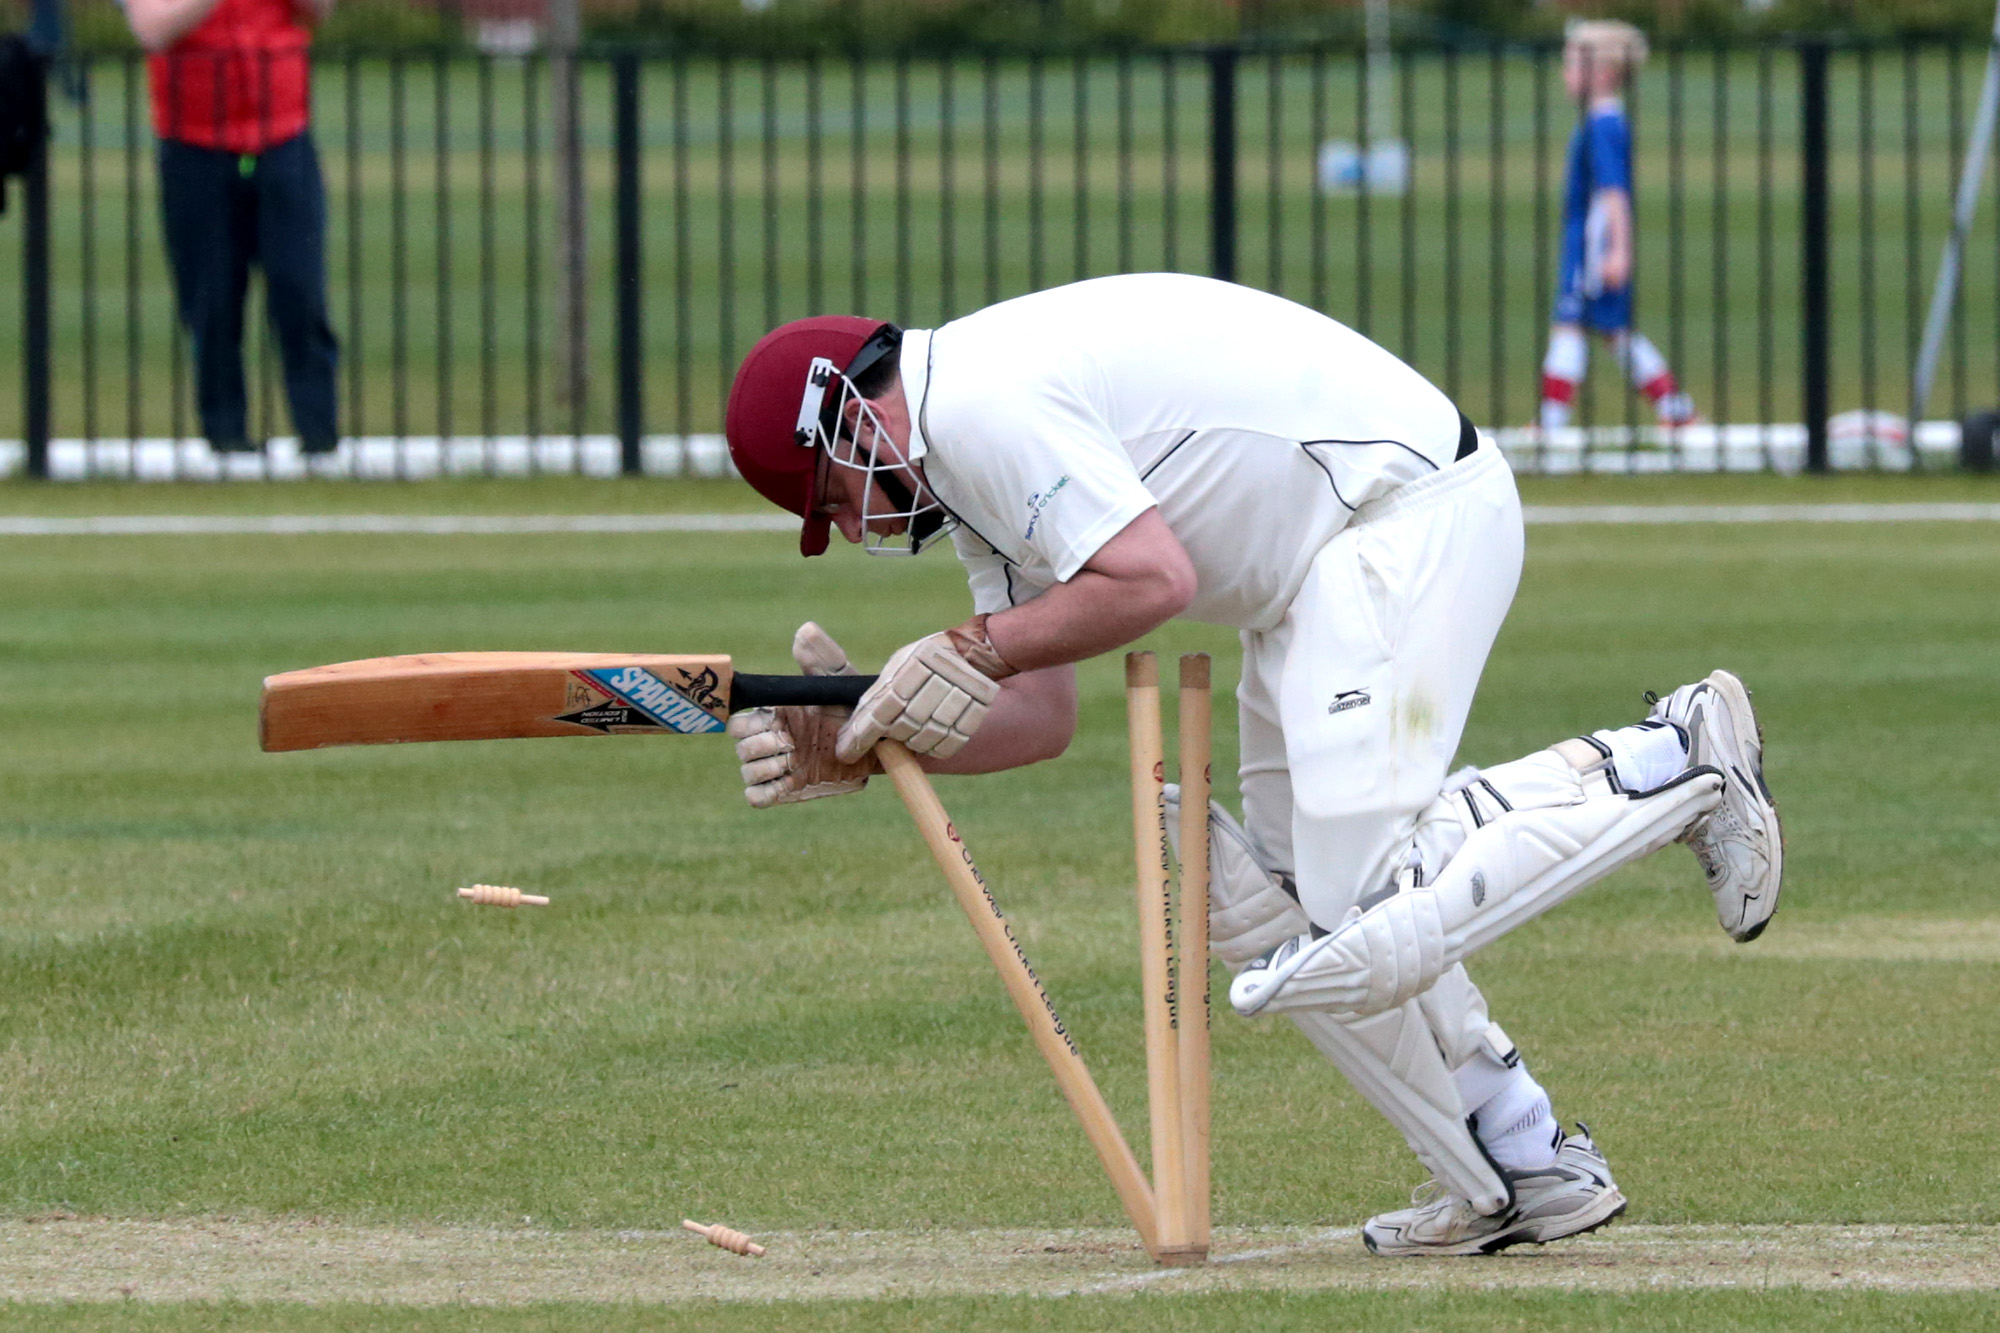 Sandford St Martin's Jonathan Springer hits his own wicket after being struck on the head by a short-pitched delivery during his side's rain-affected Cherwell League Division 2 clash at Didcot. Picture: Ric Mellis